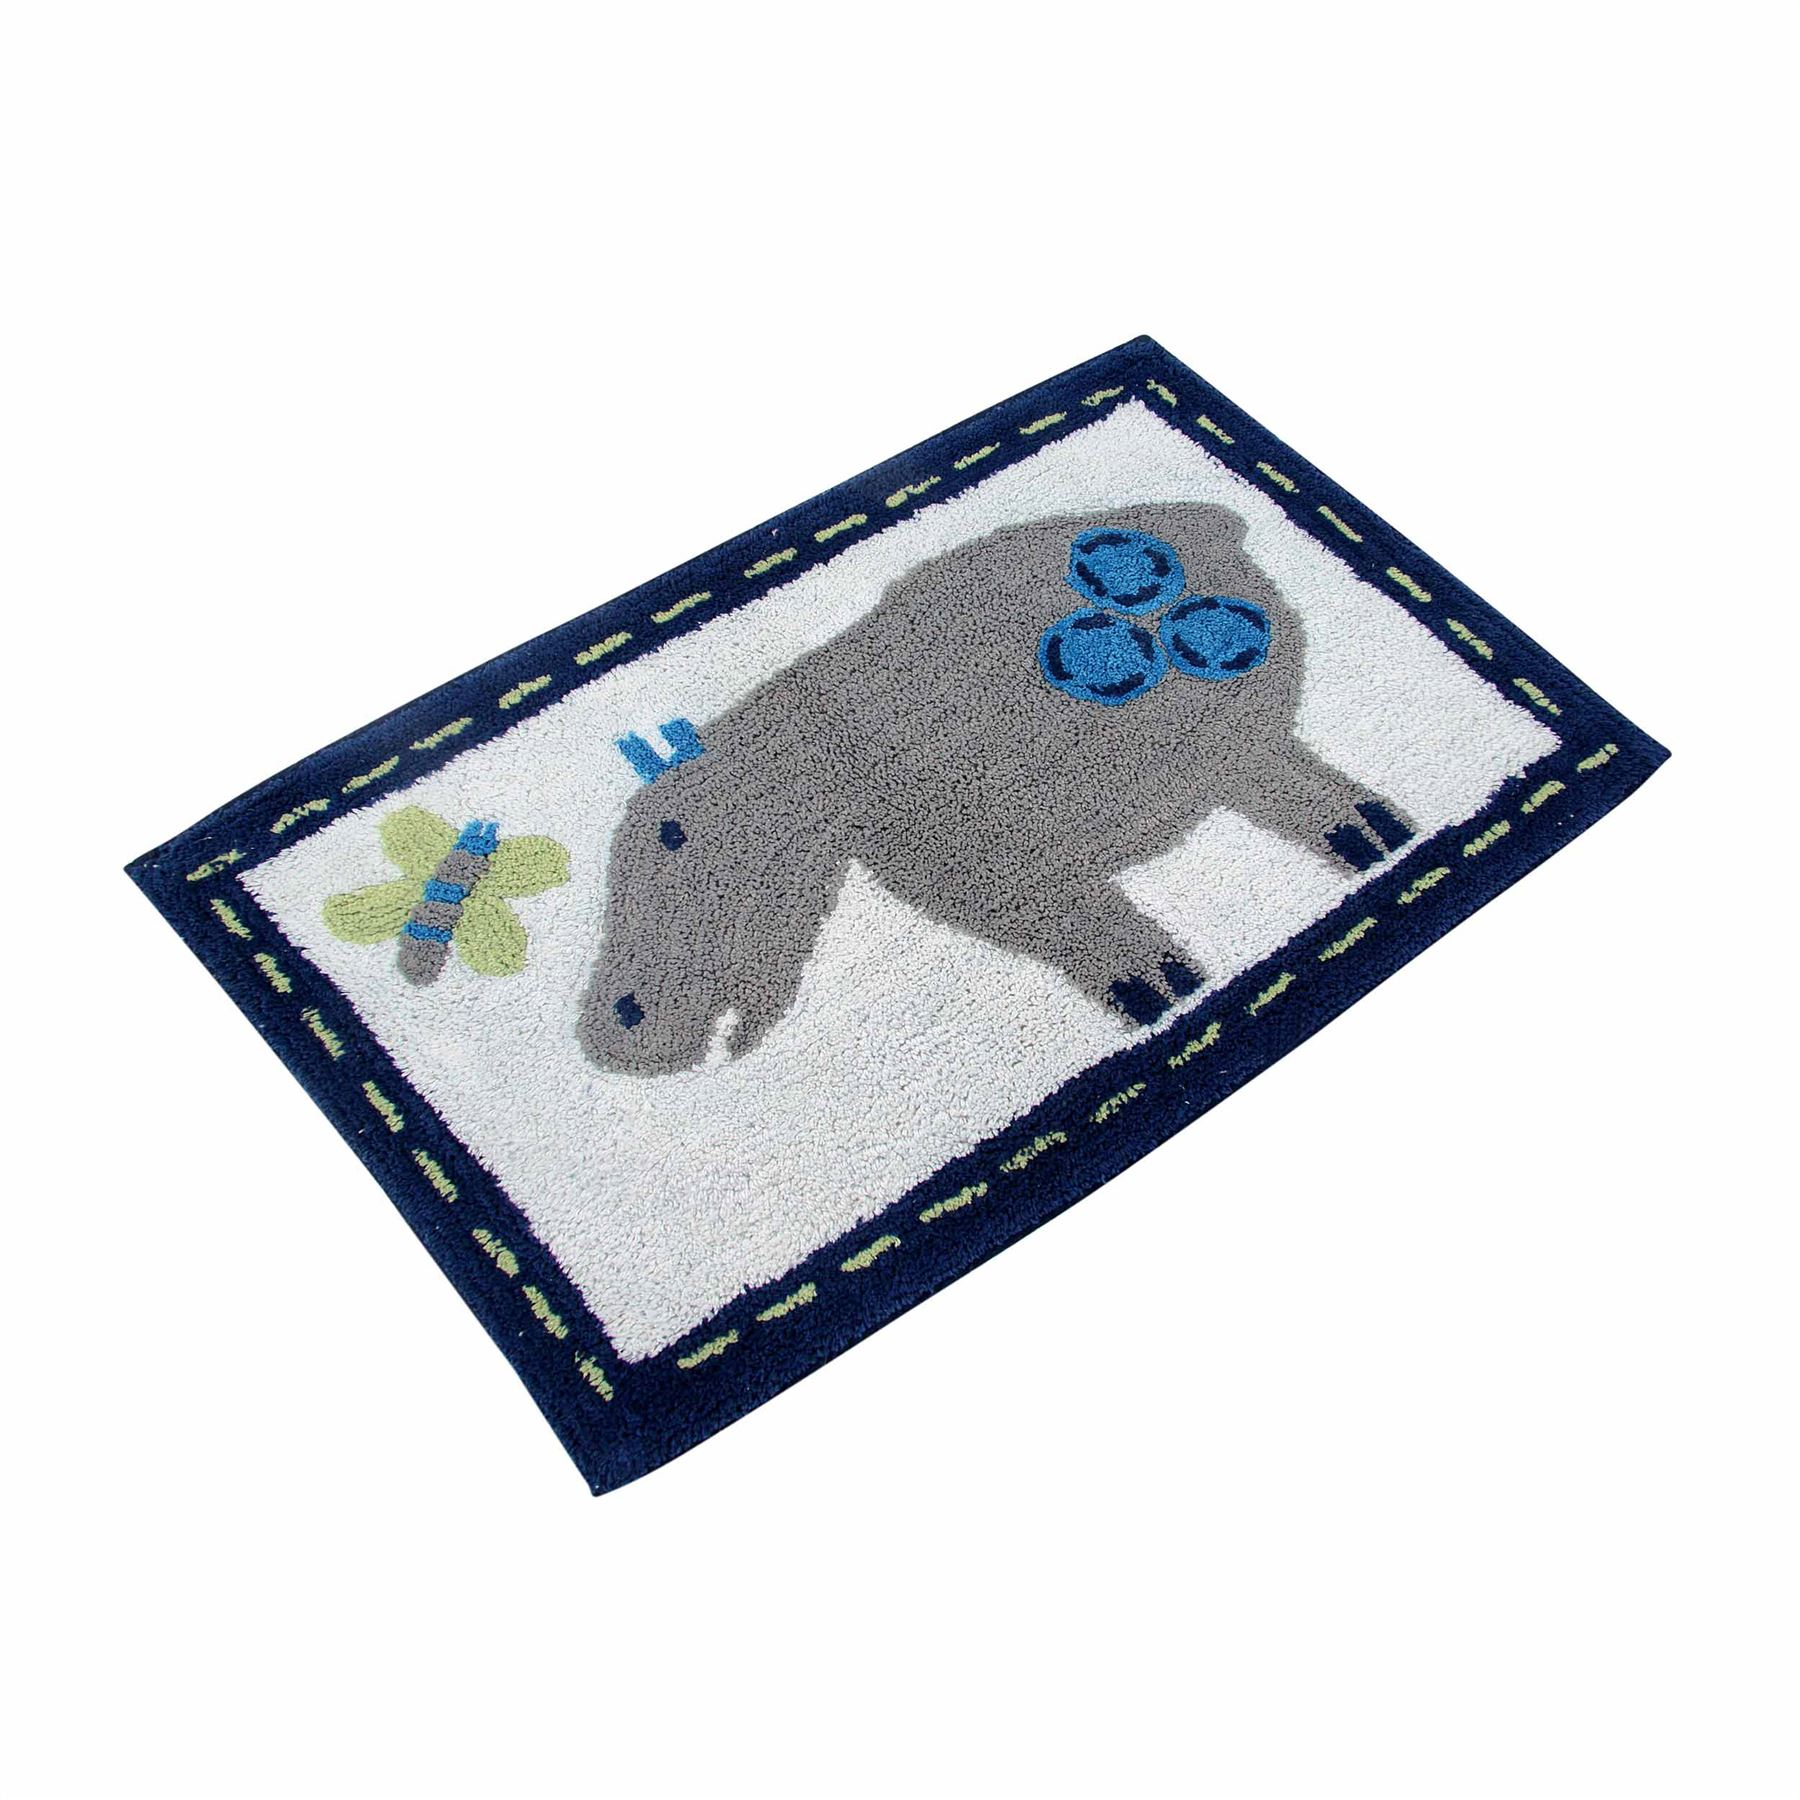 cotton children rugs girls boys bedroom playroom floor mat littlebigbell boy s bedroom ideas decorating with a rug